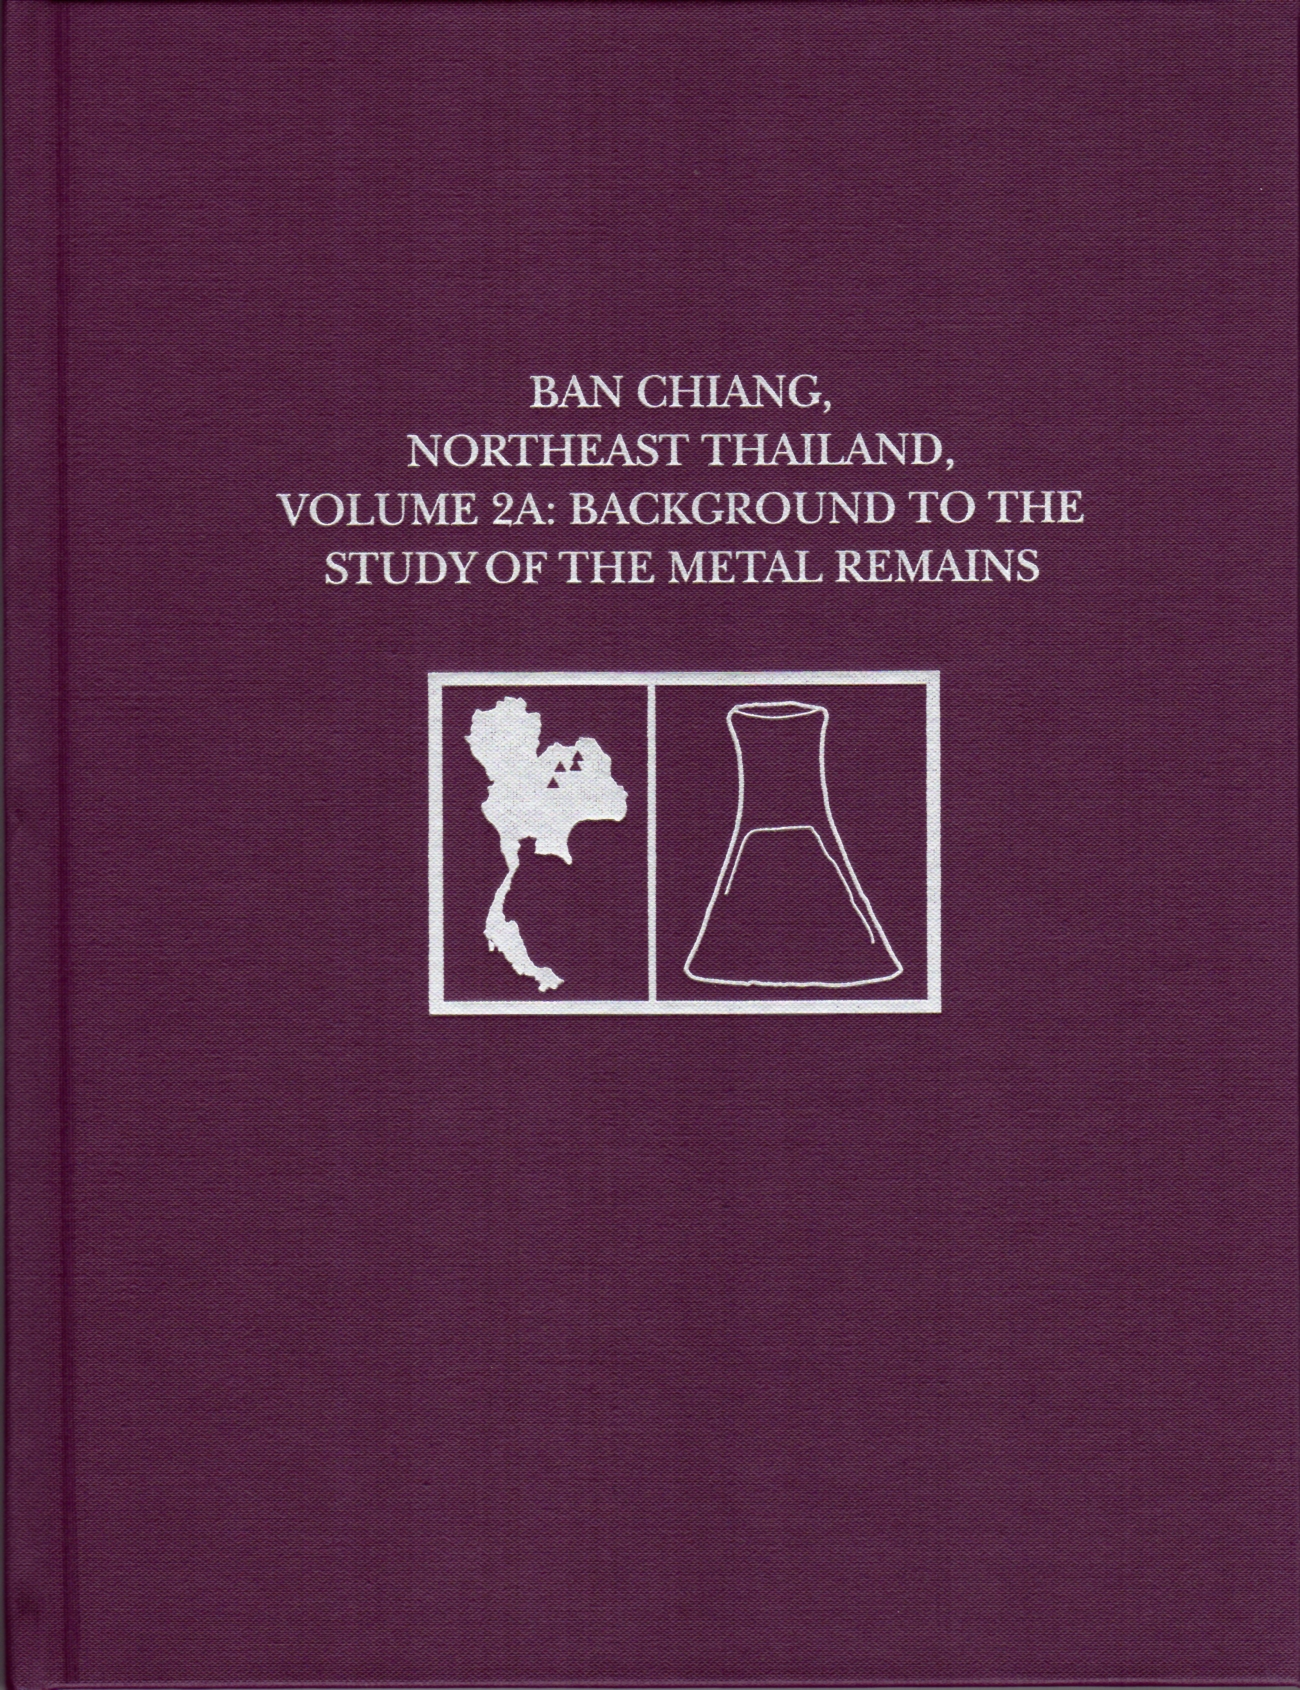 ISEAA Begins Posting Chapters from Volume 2A of the Ban Chiang Metals Monograph Series